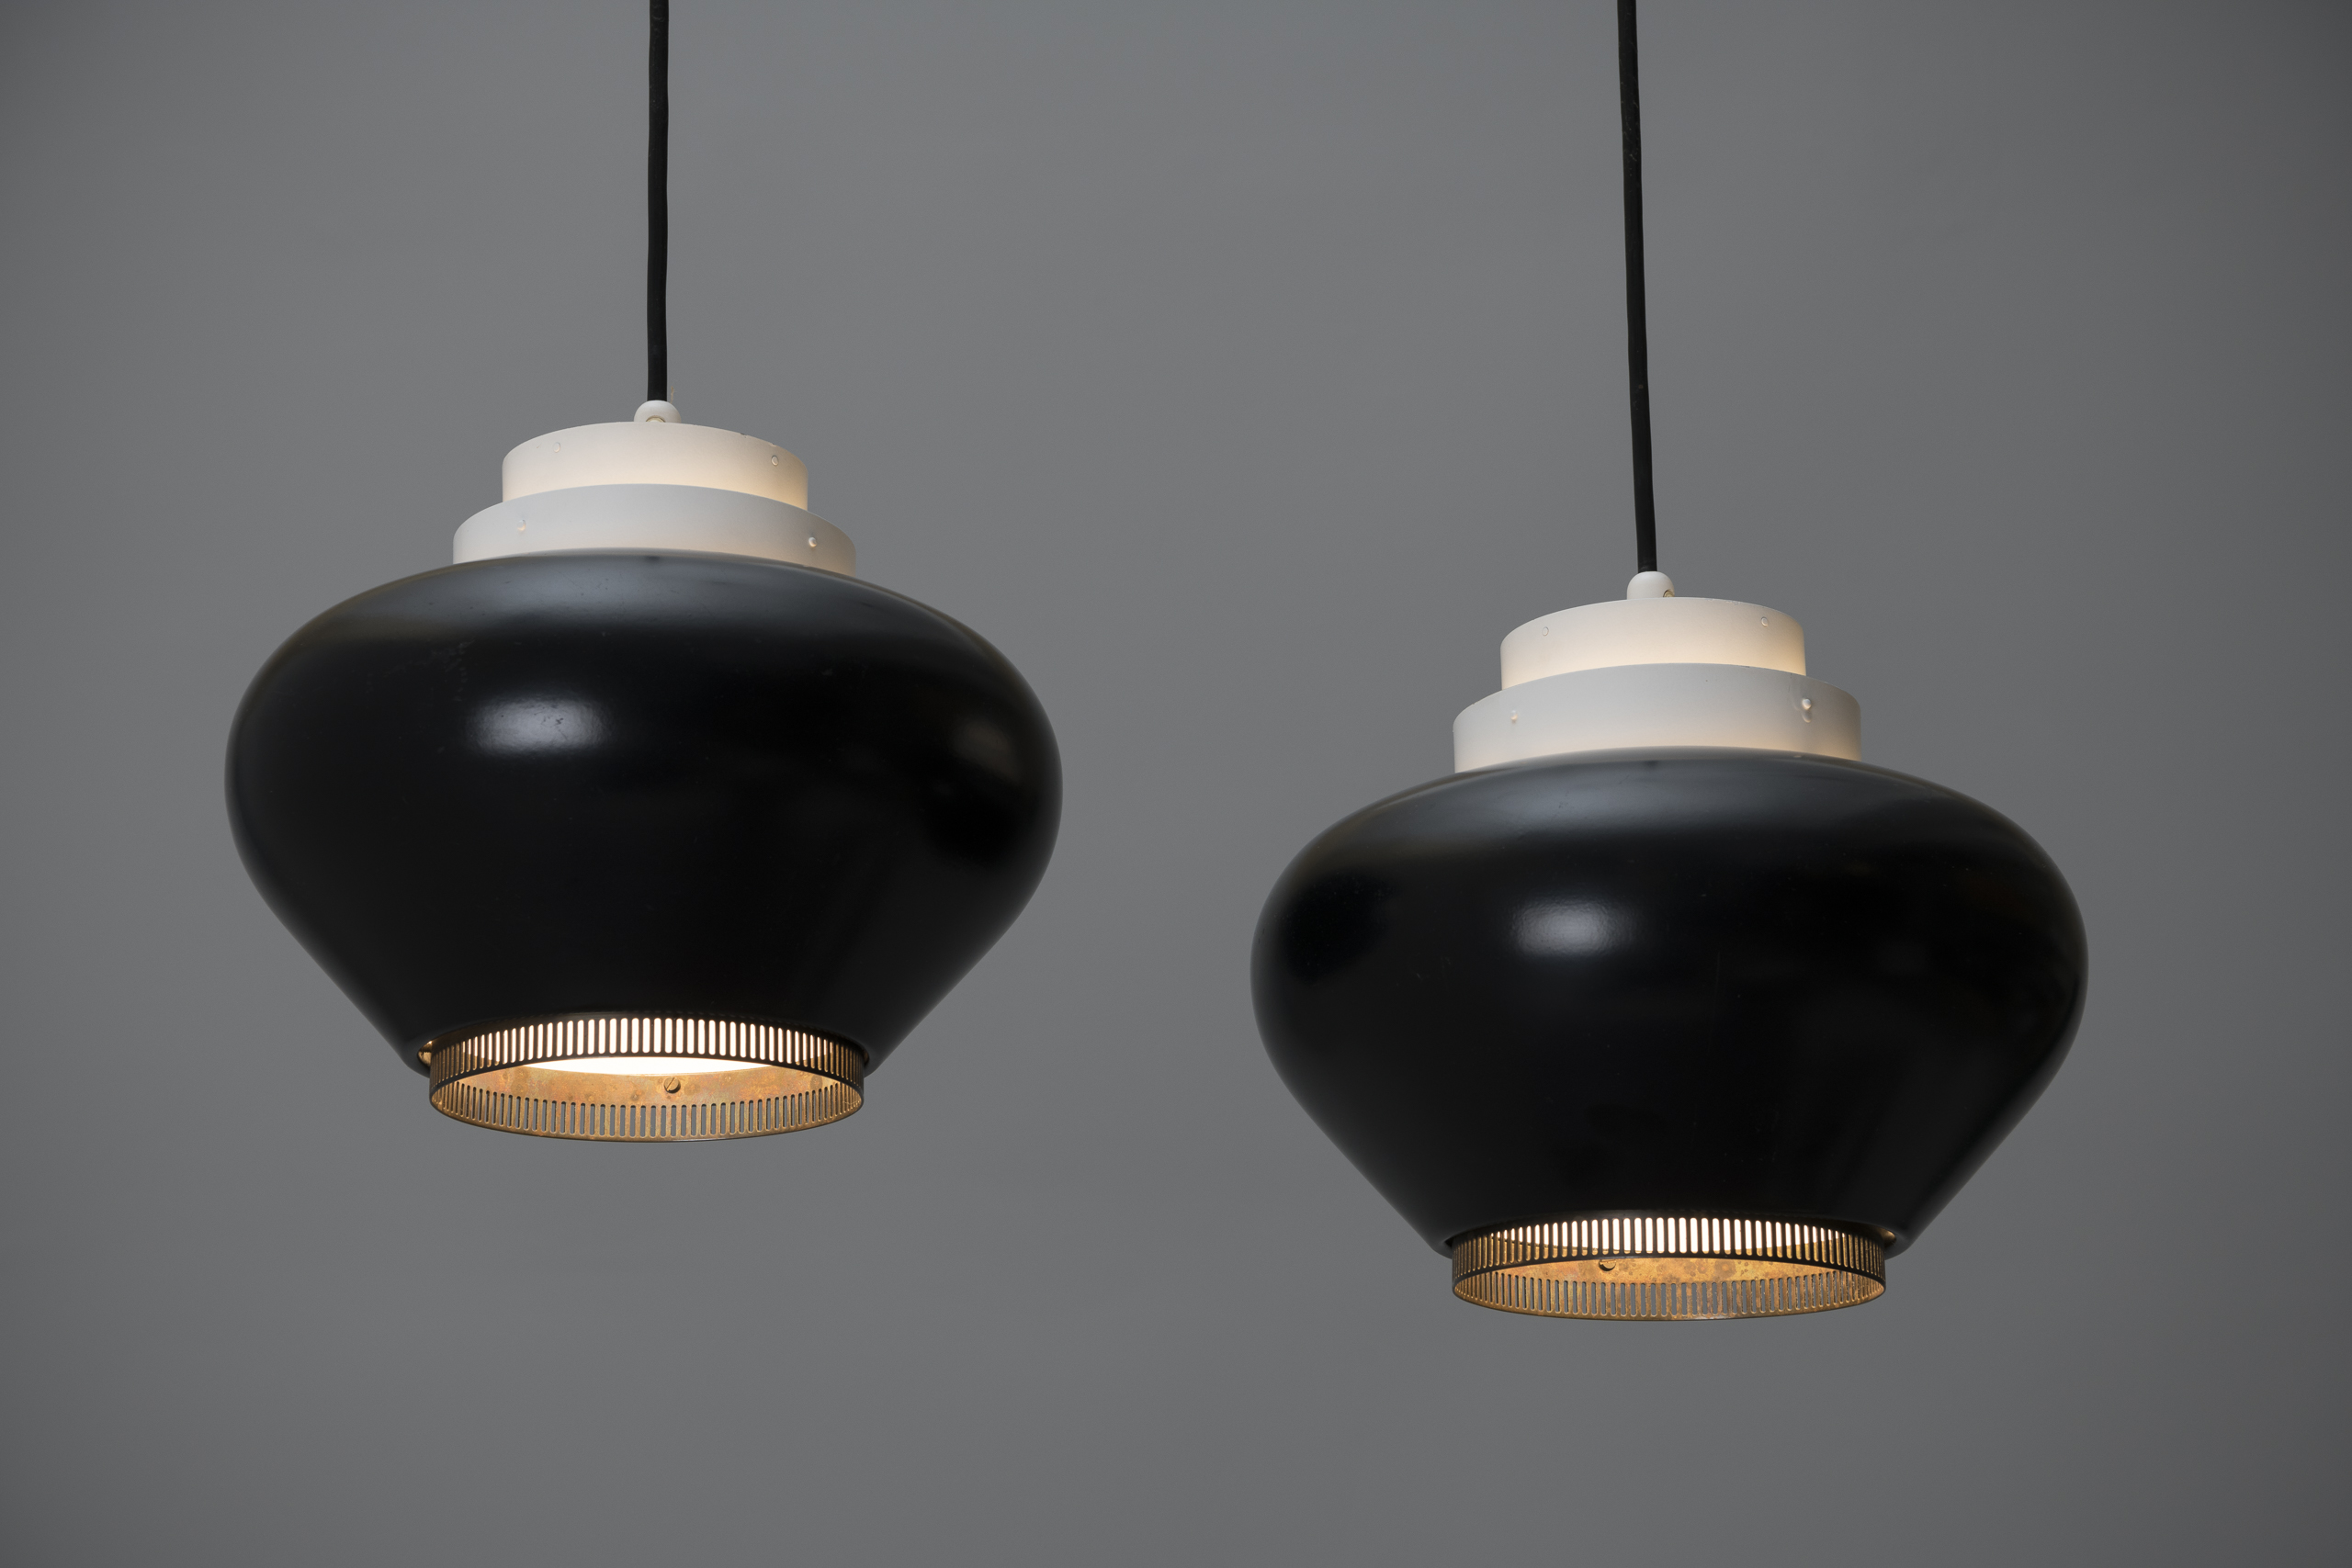 Pair of Ceiling Lamps, Model no. 'A 333'